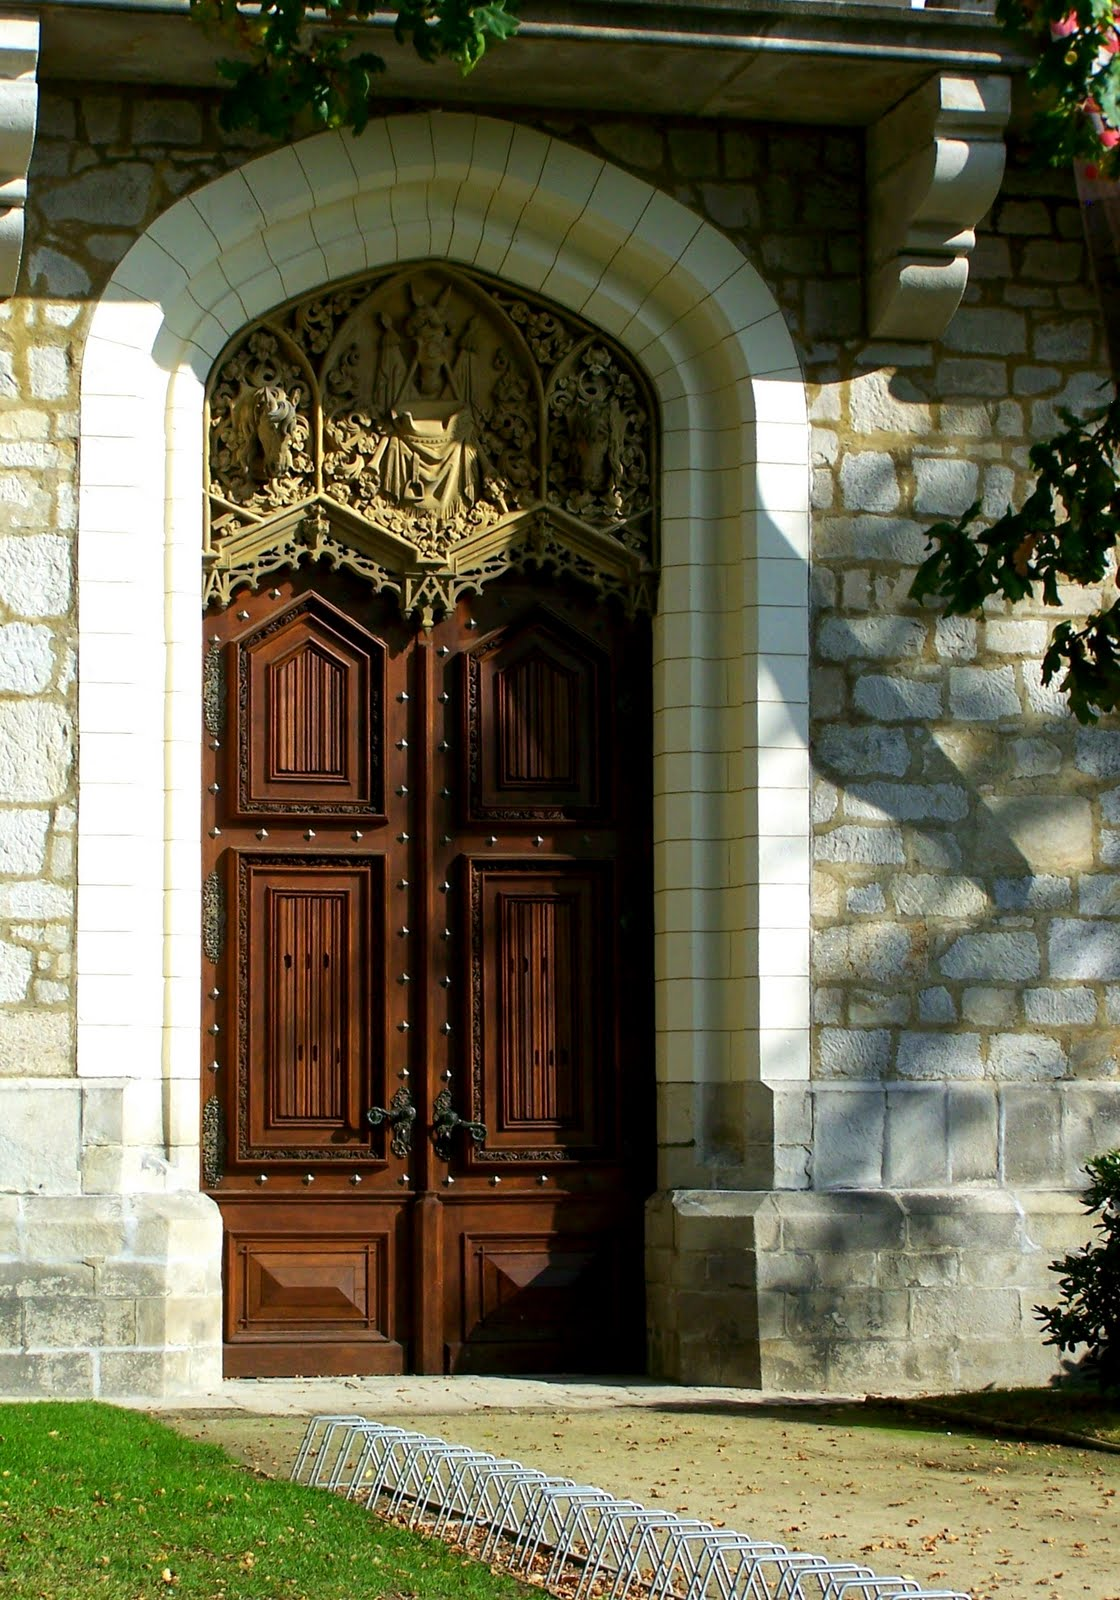 Abroad in the czech republic more interesting doors for Door z prague